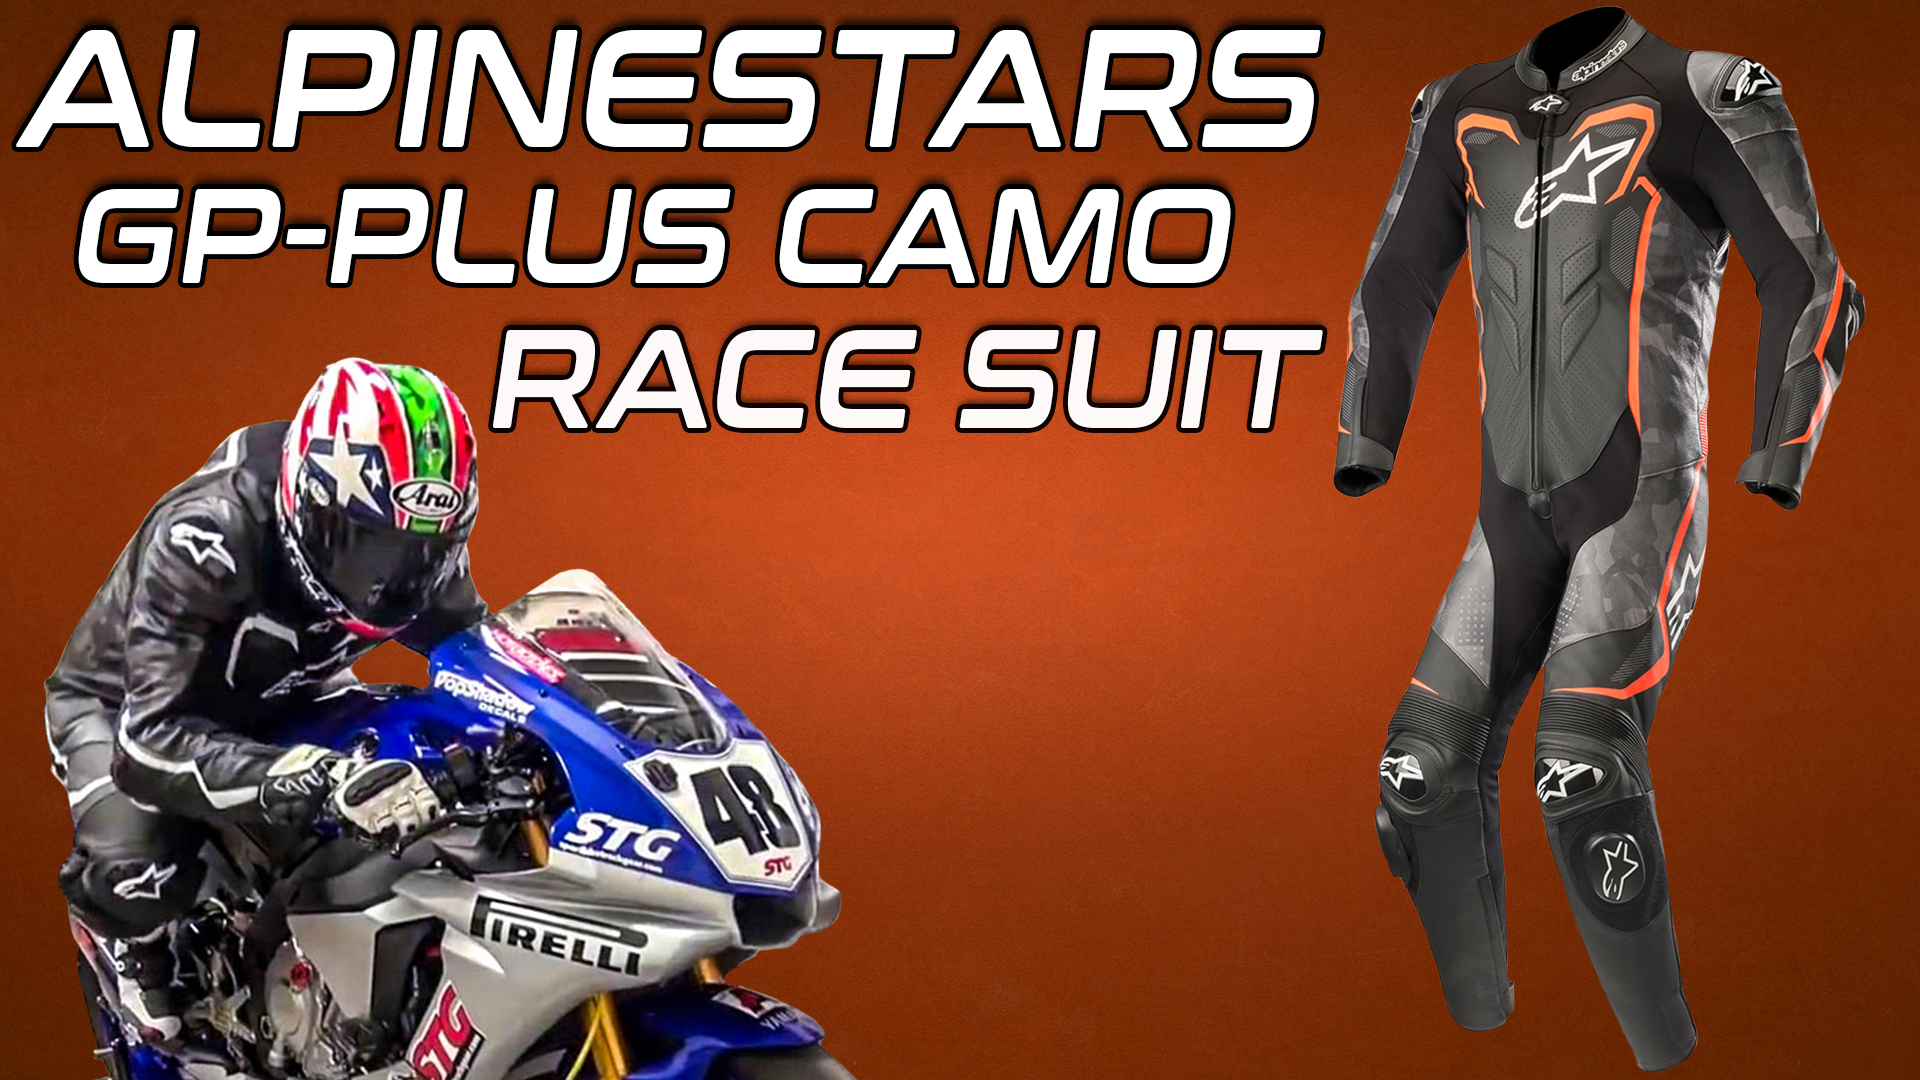 Alpinestars GP Plus Camo Race Suit